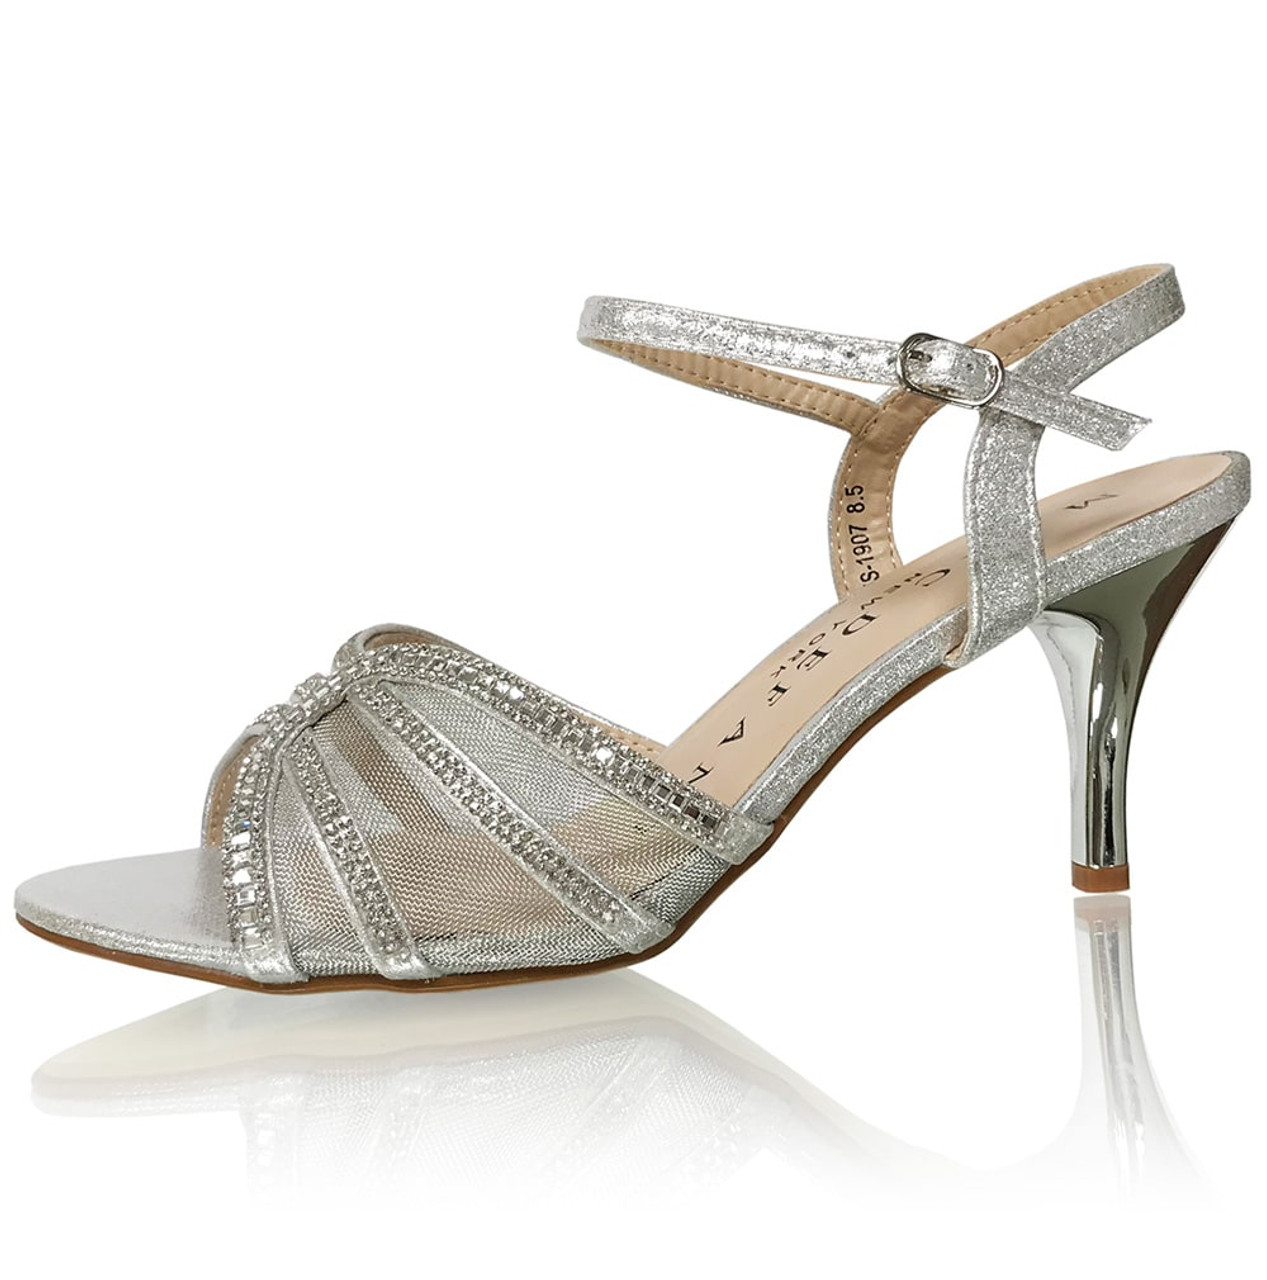 Bridal Netted Bridal Sandal Pumps